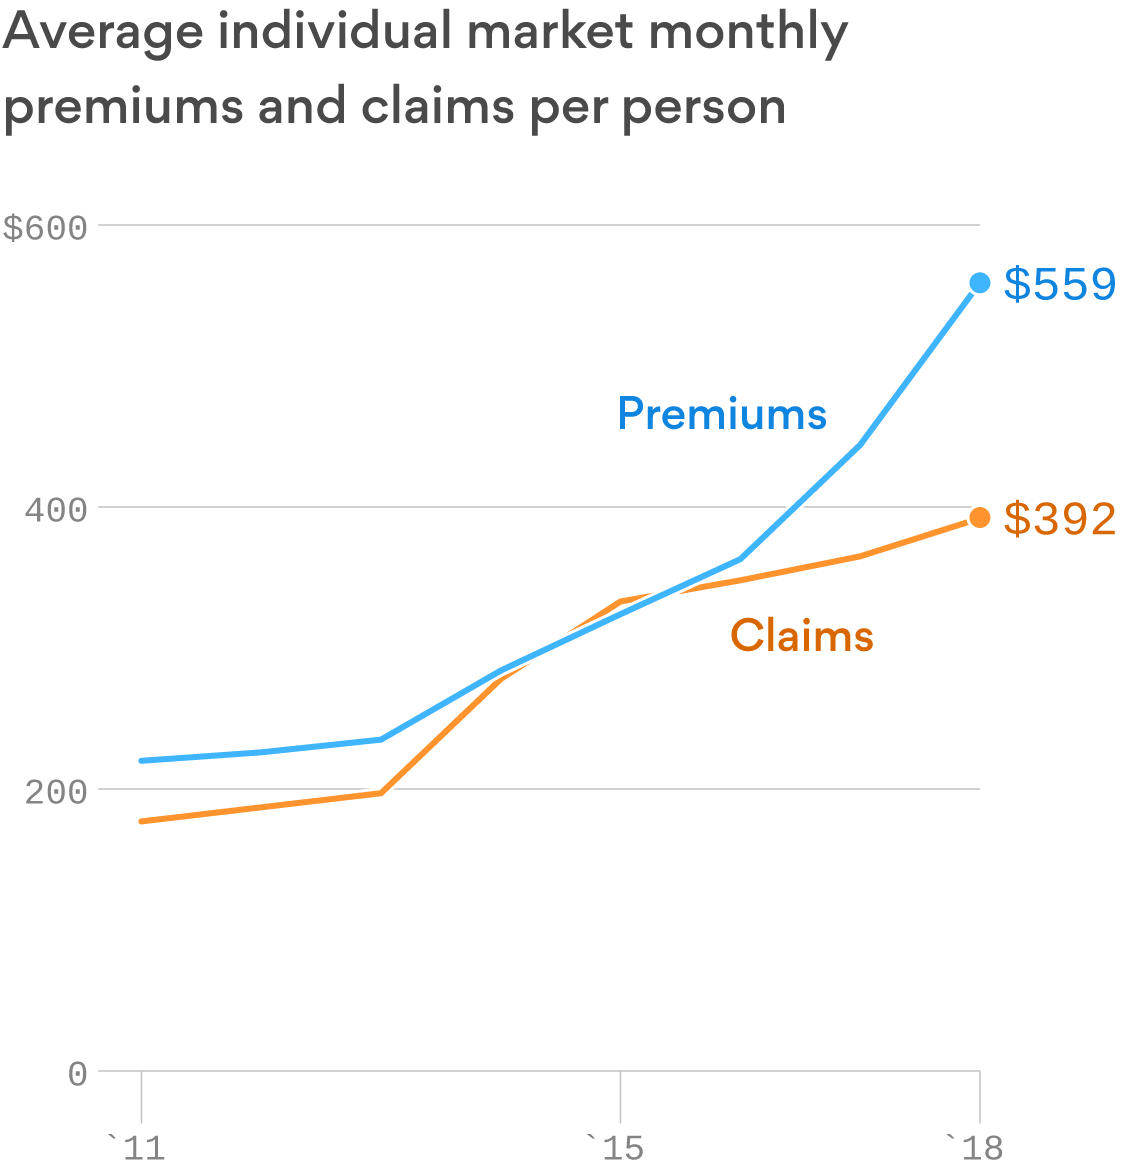 Health insurers are thriving in the individual market, despite worries over Trump's policies